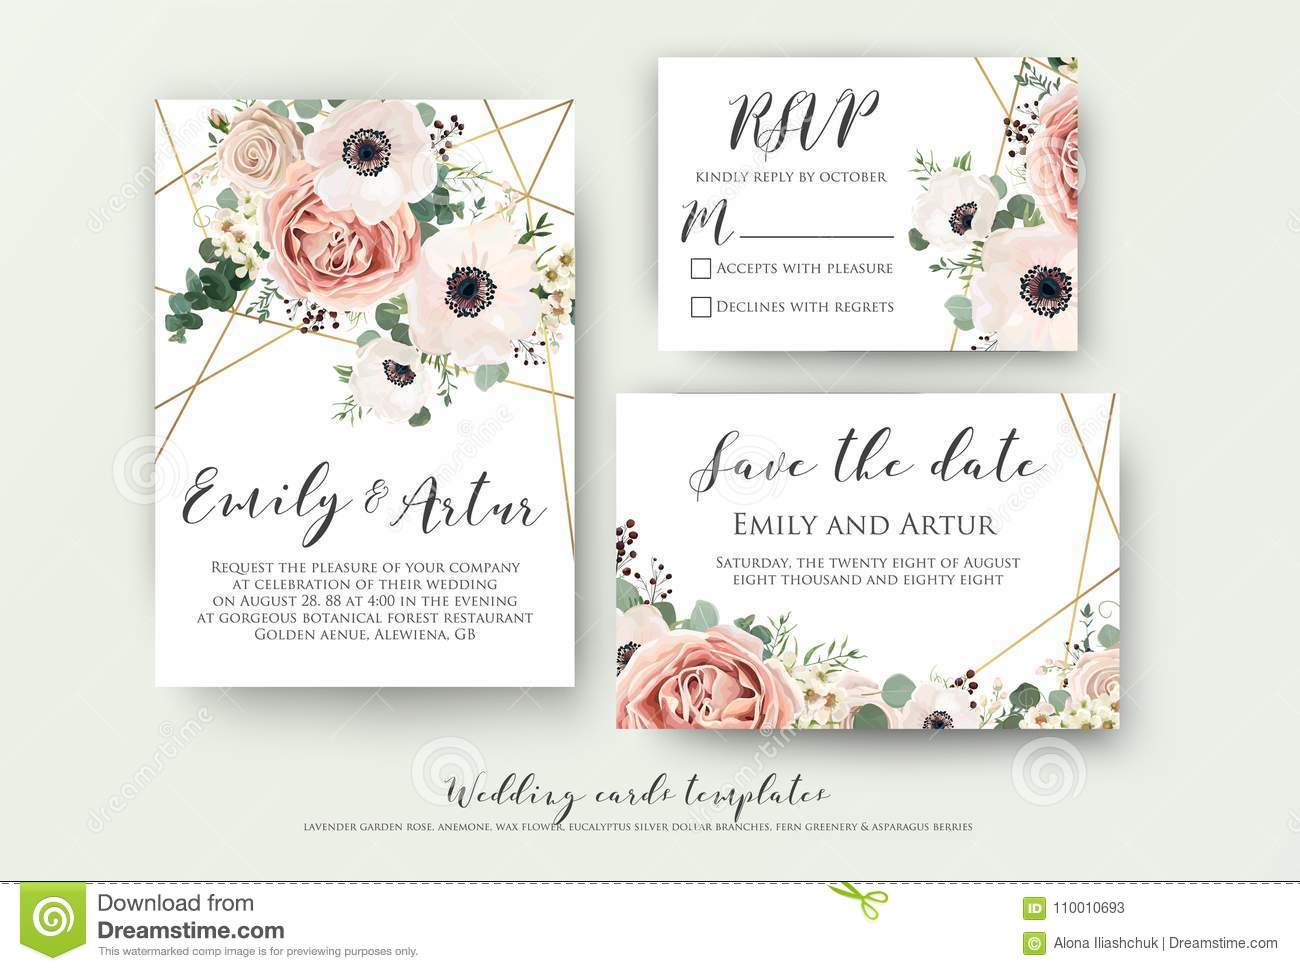 Wedding Invite, Invitation, Rsvp, Save The Date Card Design With ...